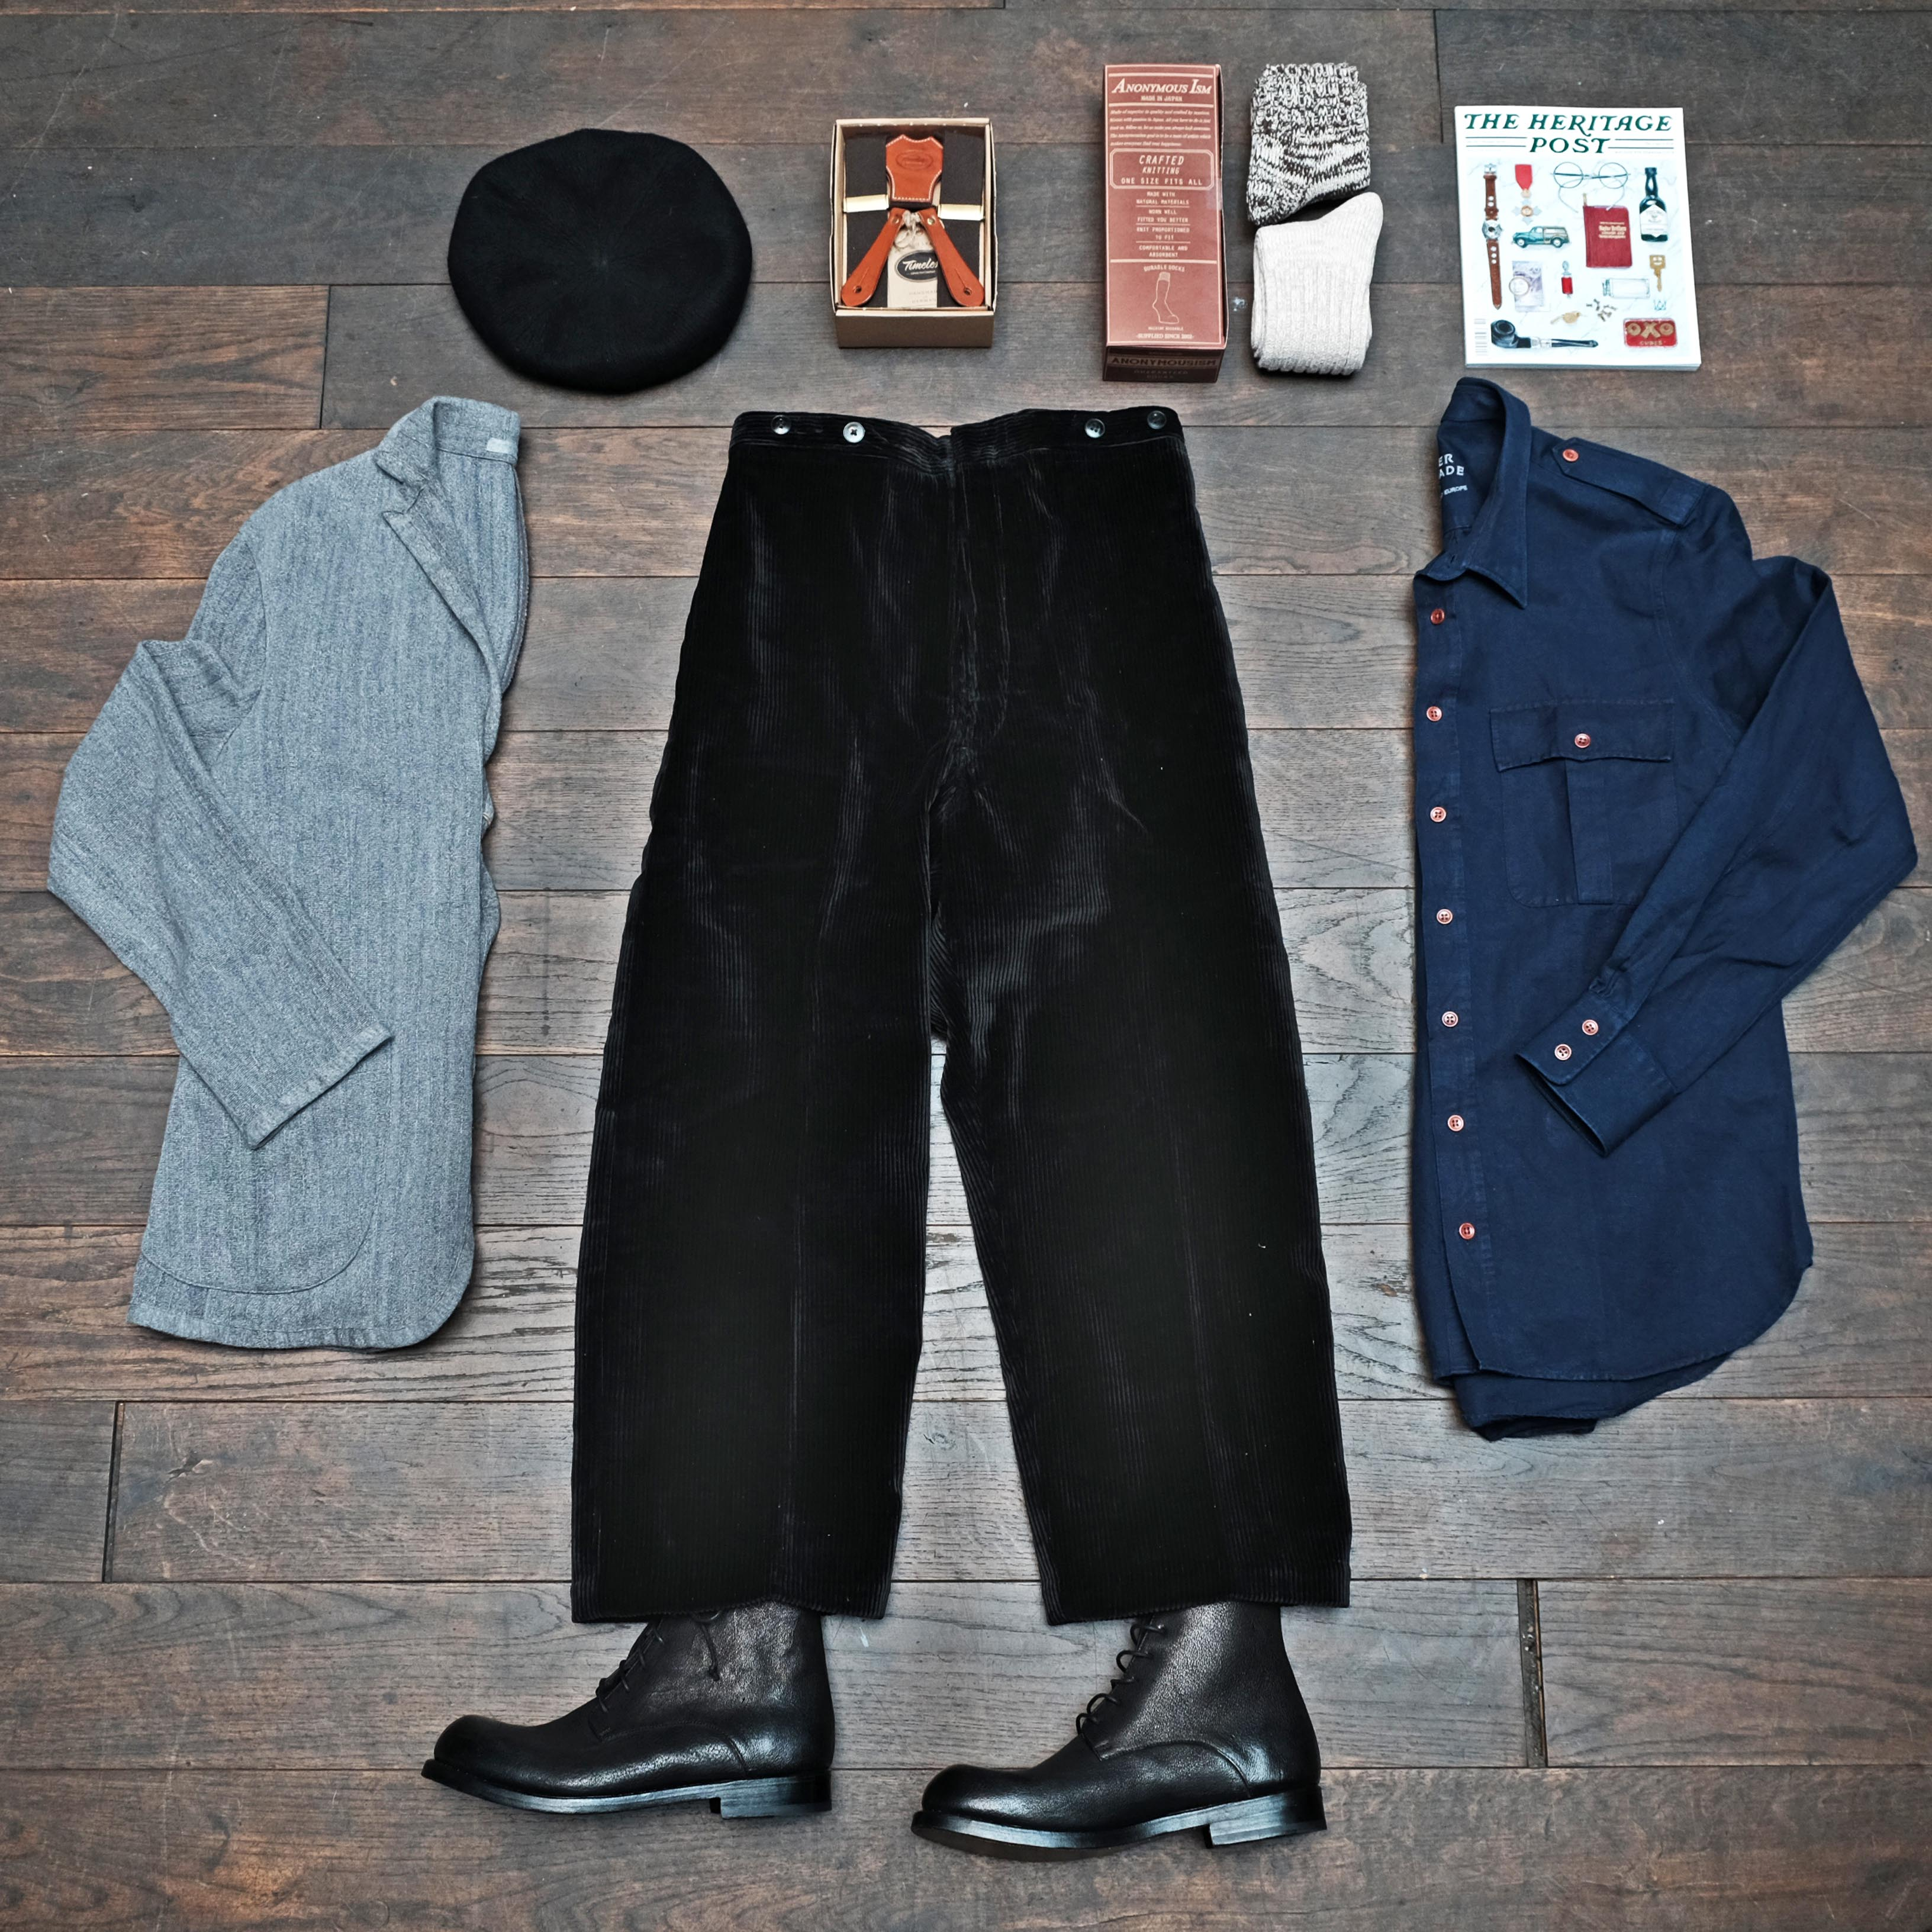 outfit-interbrigade-vintage-lastconspiracy-barett-anonymous